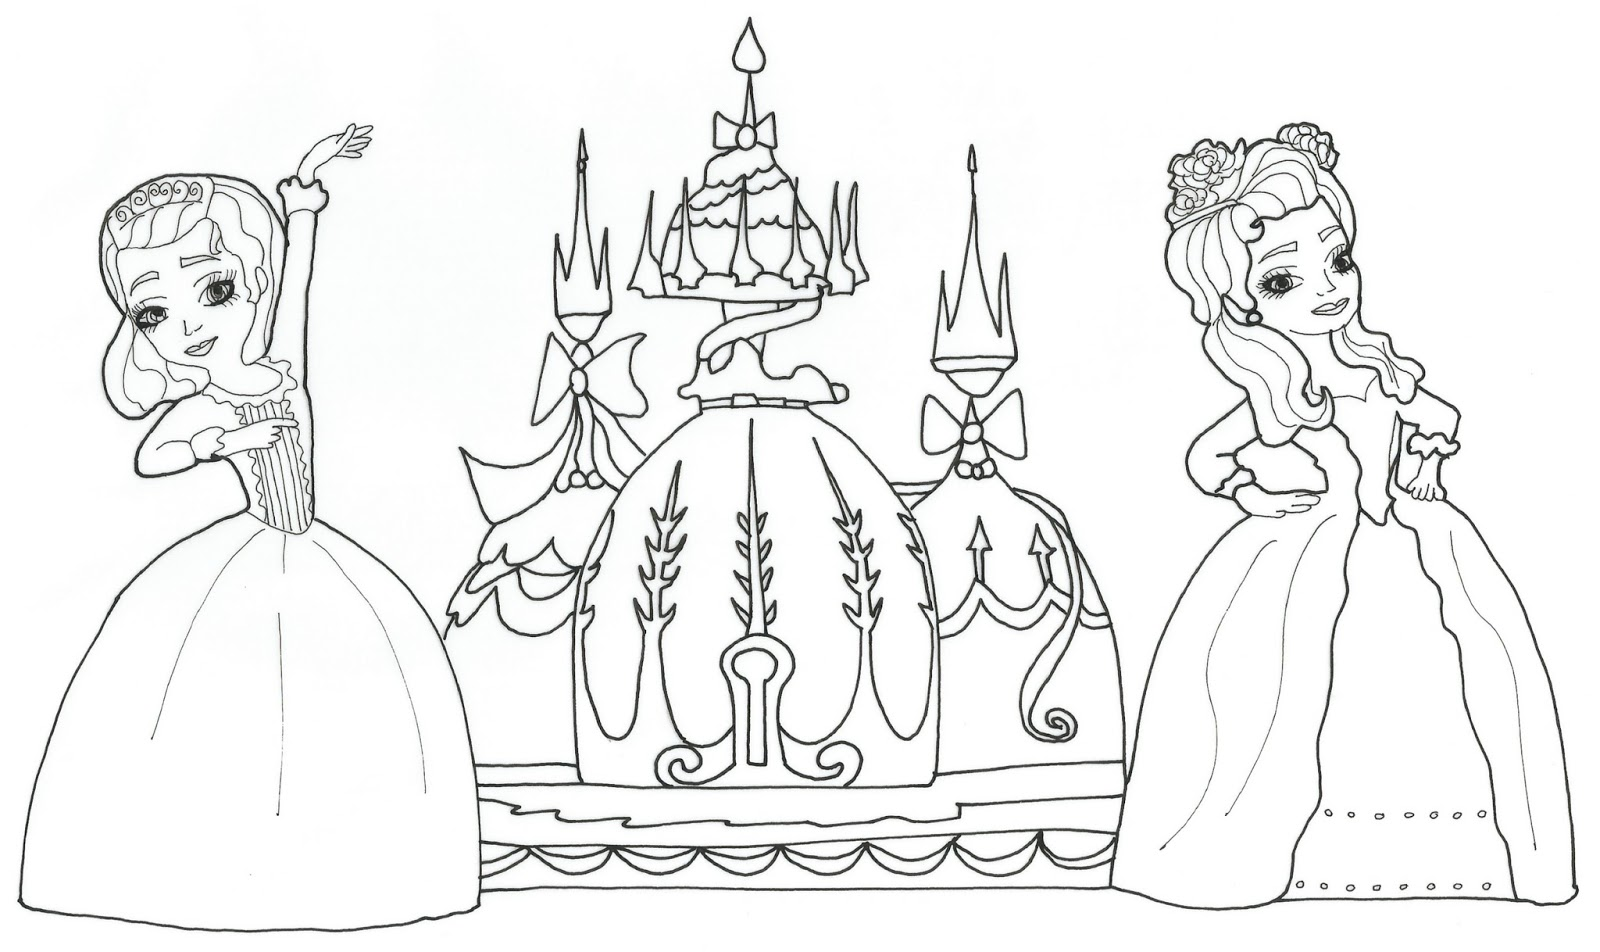 clover sofia the first coloring page additionally sofia the first coloring page in addition dc9B6Aec7 as well 73346160e1a5c393b5f53ddff3c3fe5e also  further sofia the first coloring pages furthermore disney sofia the first coloring page together with free Sofia the first winter costume coloring page in addition princess sofia the first coloring pages besides Princess Clio Sofia the First Coloring Page additionally Sofia 2Bthe 2Bfirst 2Bsofia 2Band 2Bamber 2Bcoloring 2Bpage. on sofia the first coloring pages